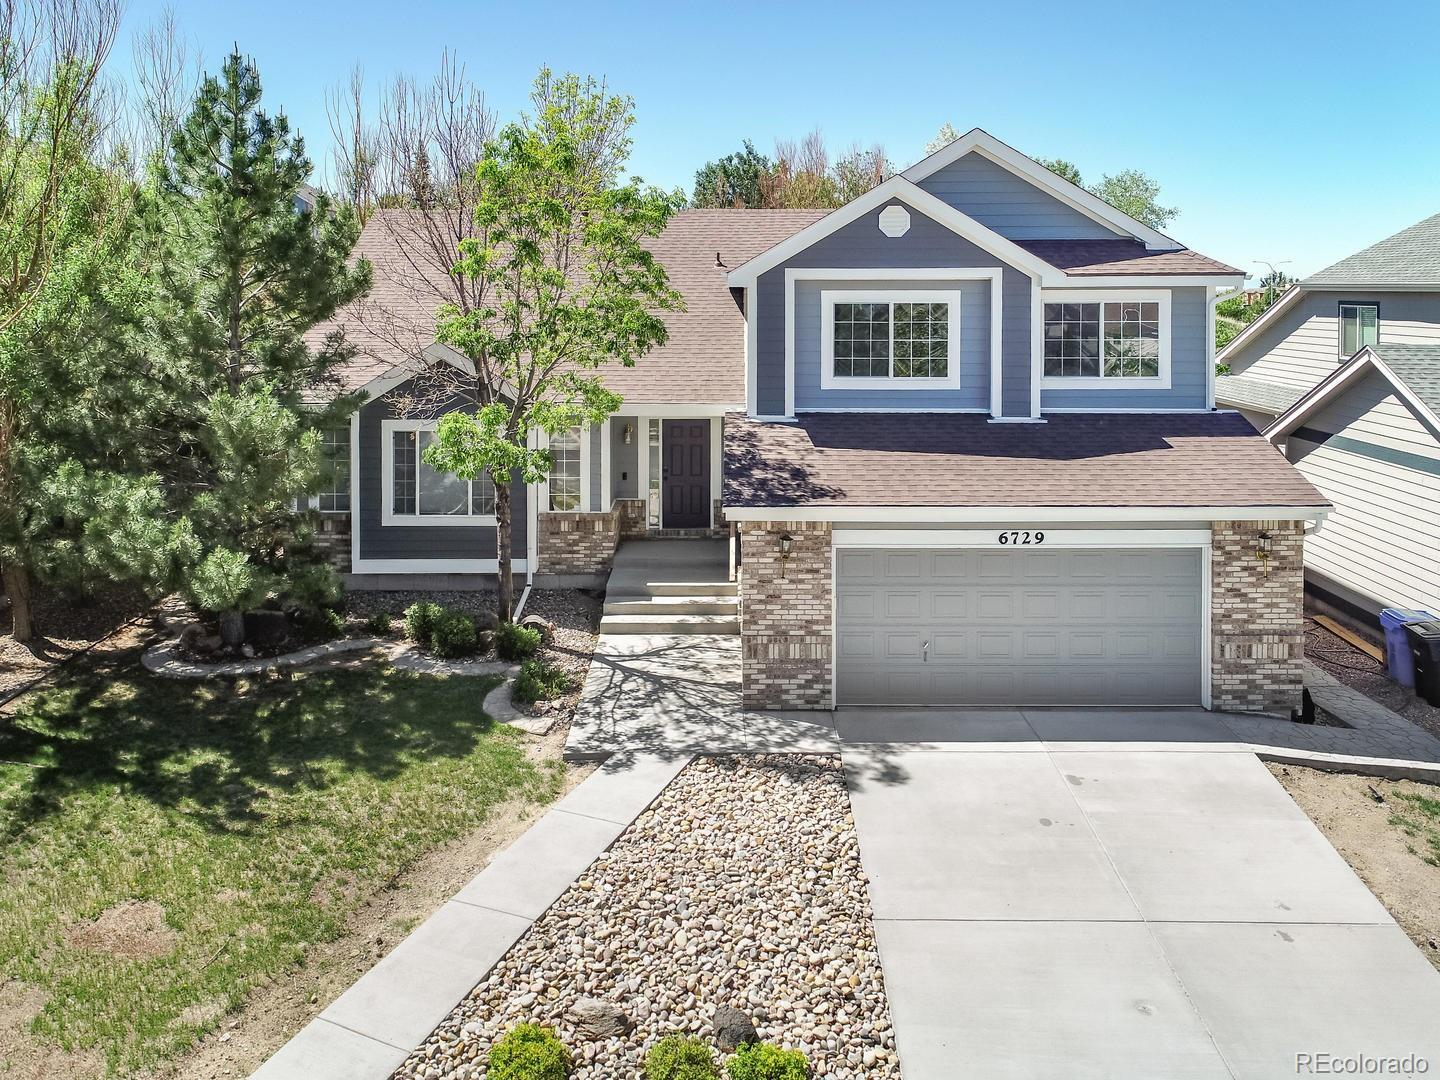 MLS# 1530283 - 1 - 6729 Stockwell Drive, Colorado Springs, CO 80922